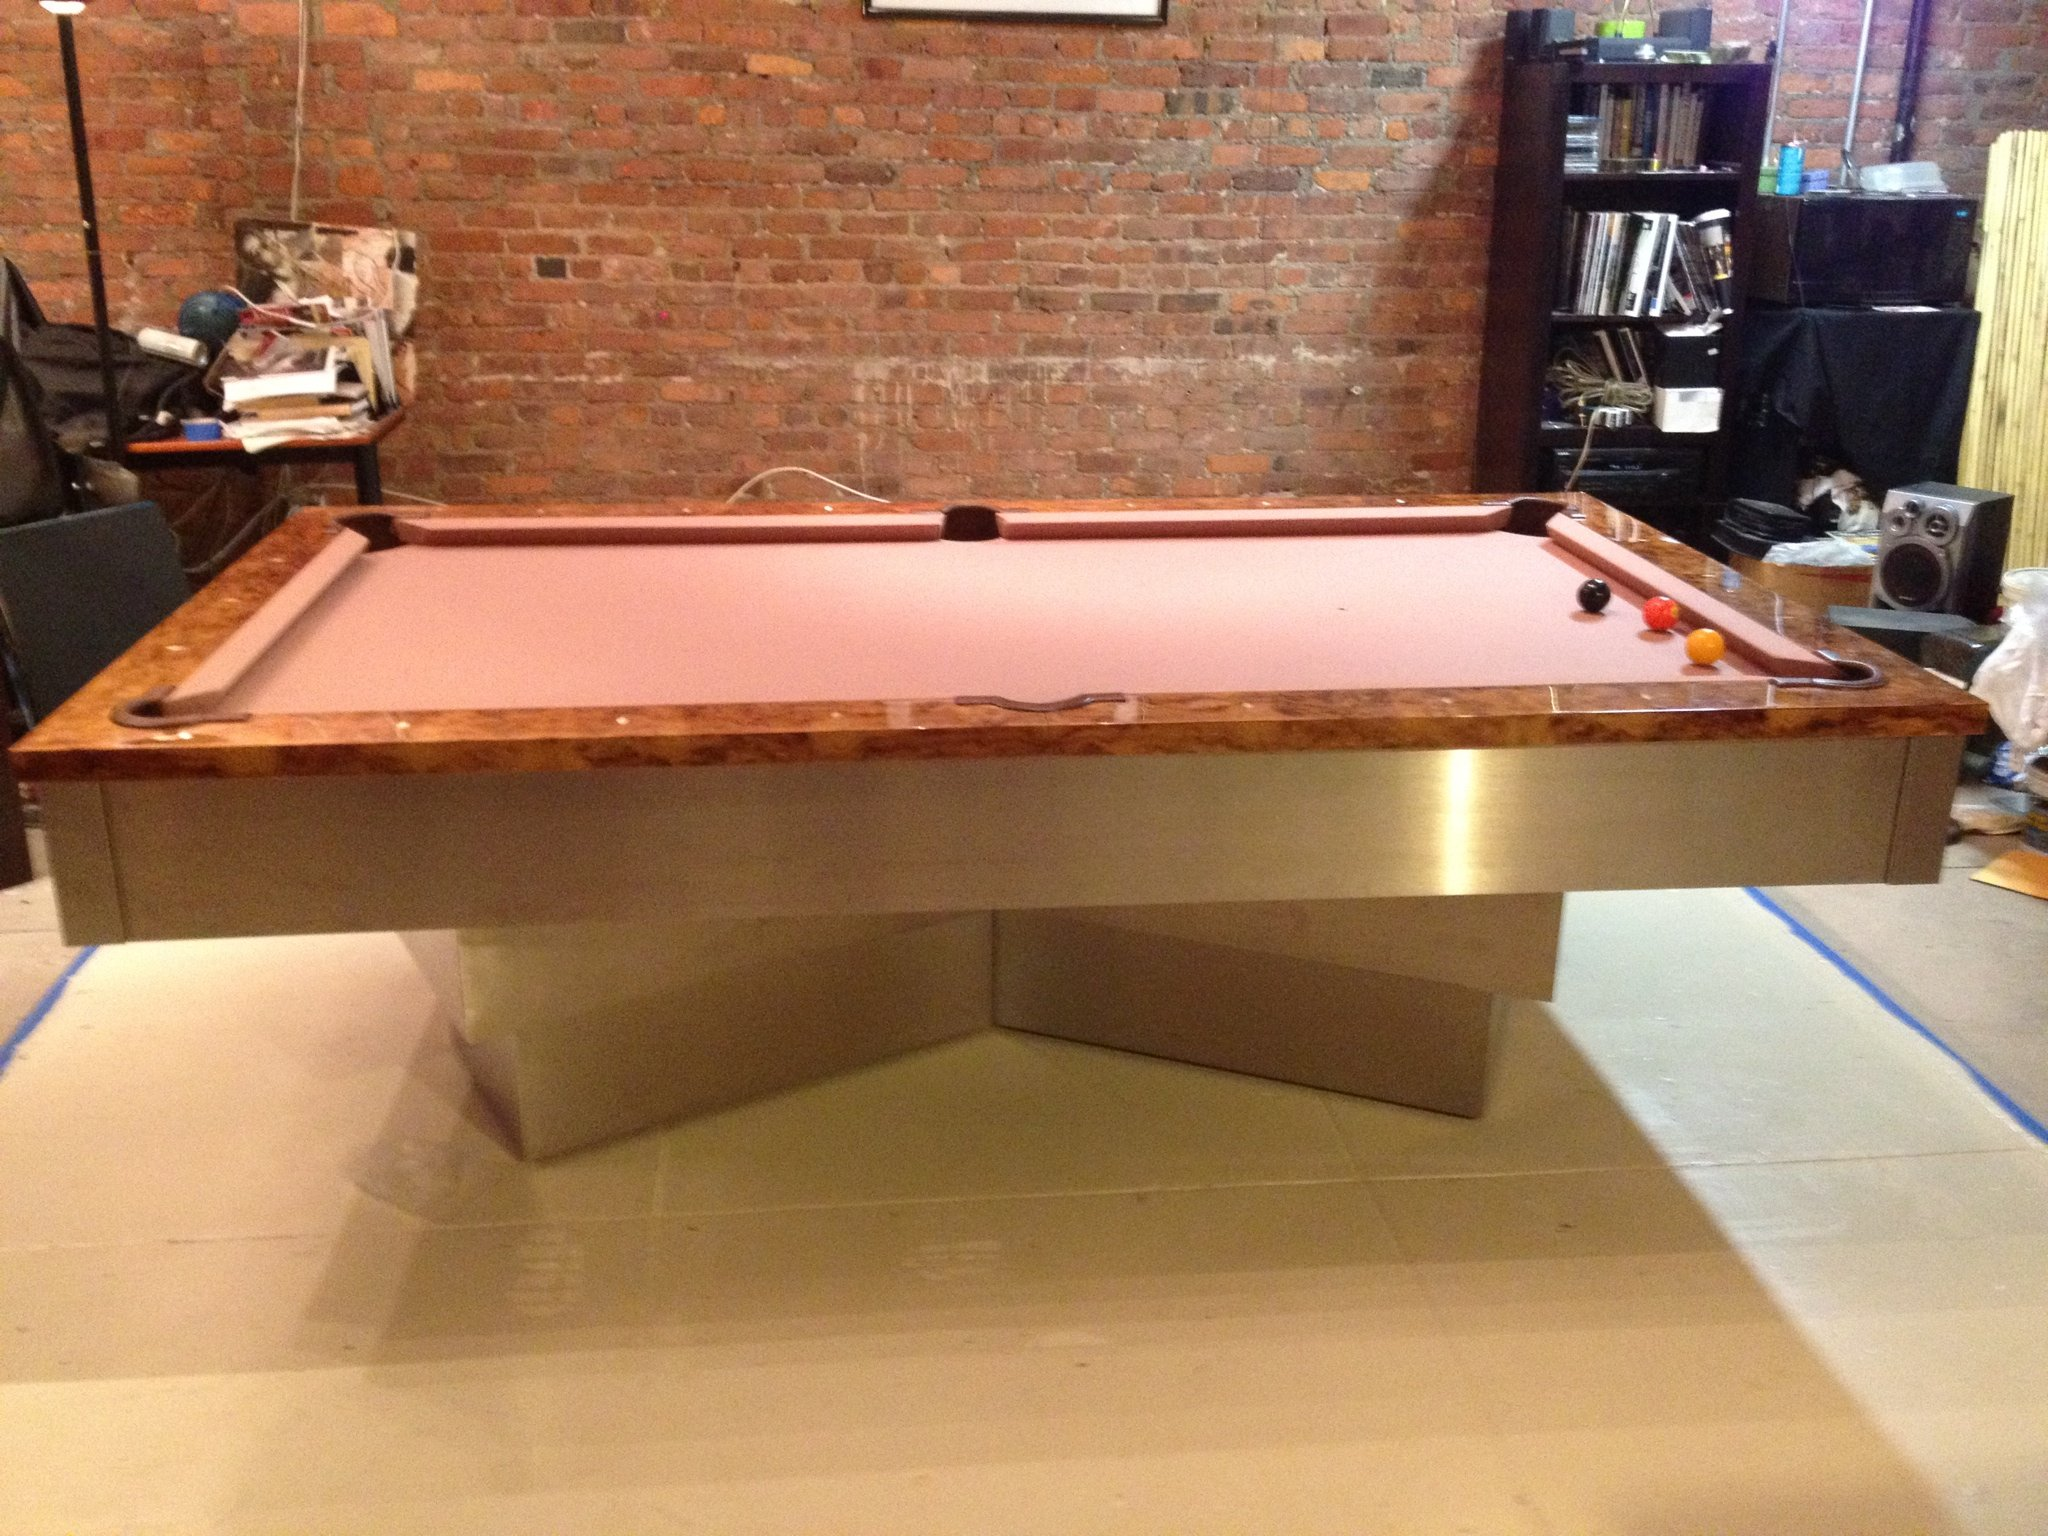 ultimate indoor media id may facebook ultimatebilliardservice movers home pool table billiard contain service image